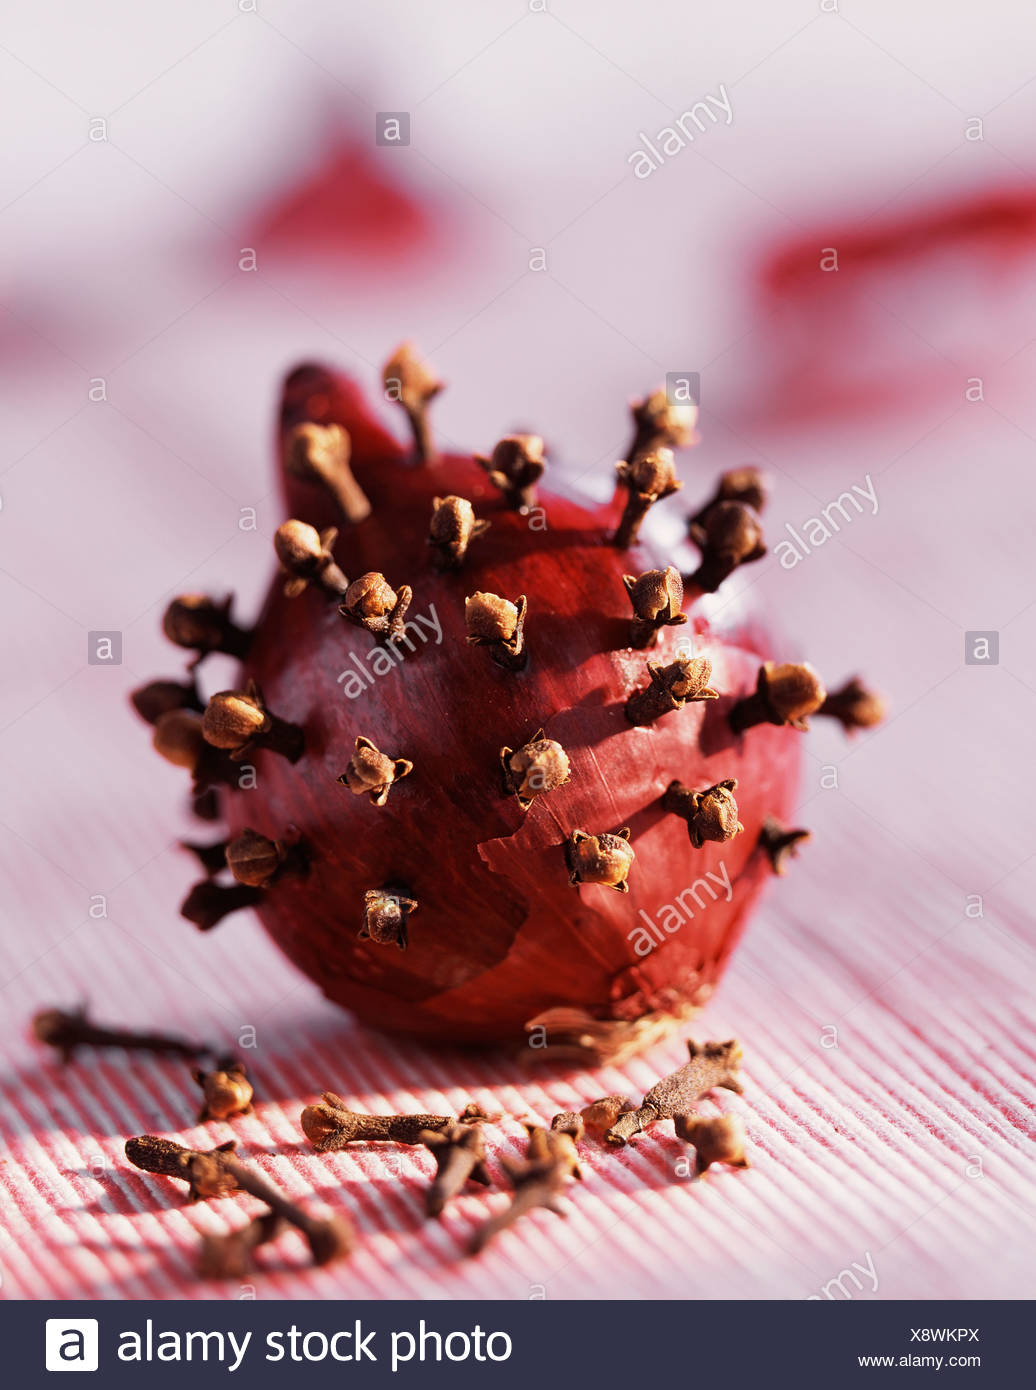 Cloves and Onion - Stock Image